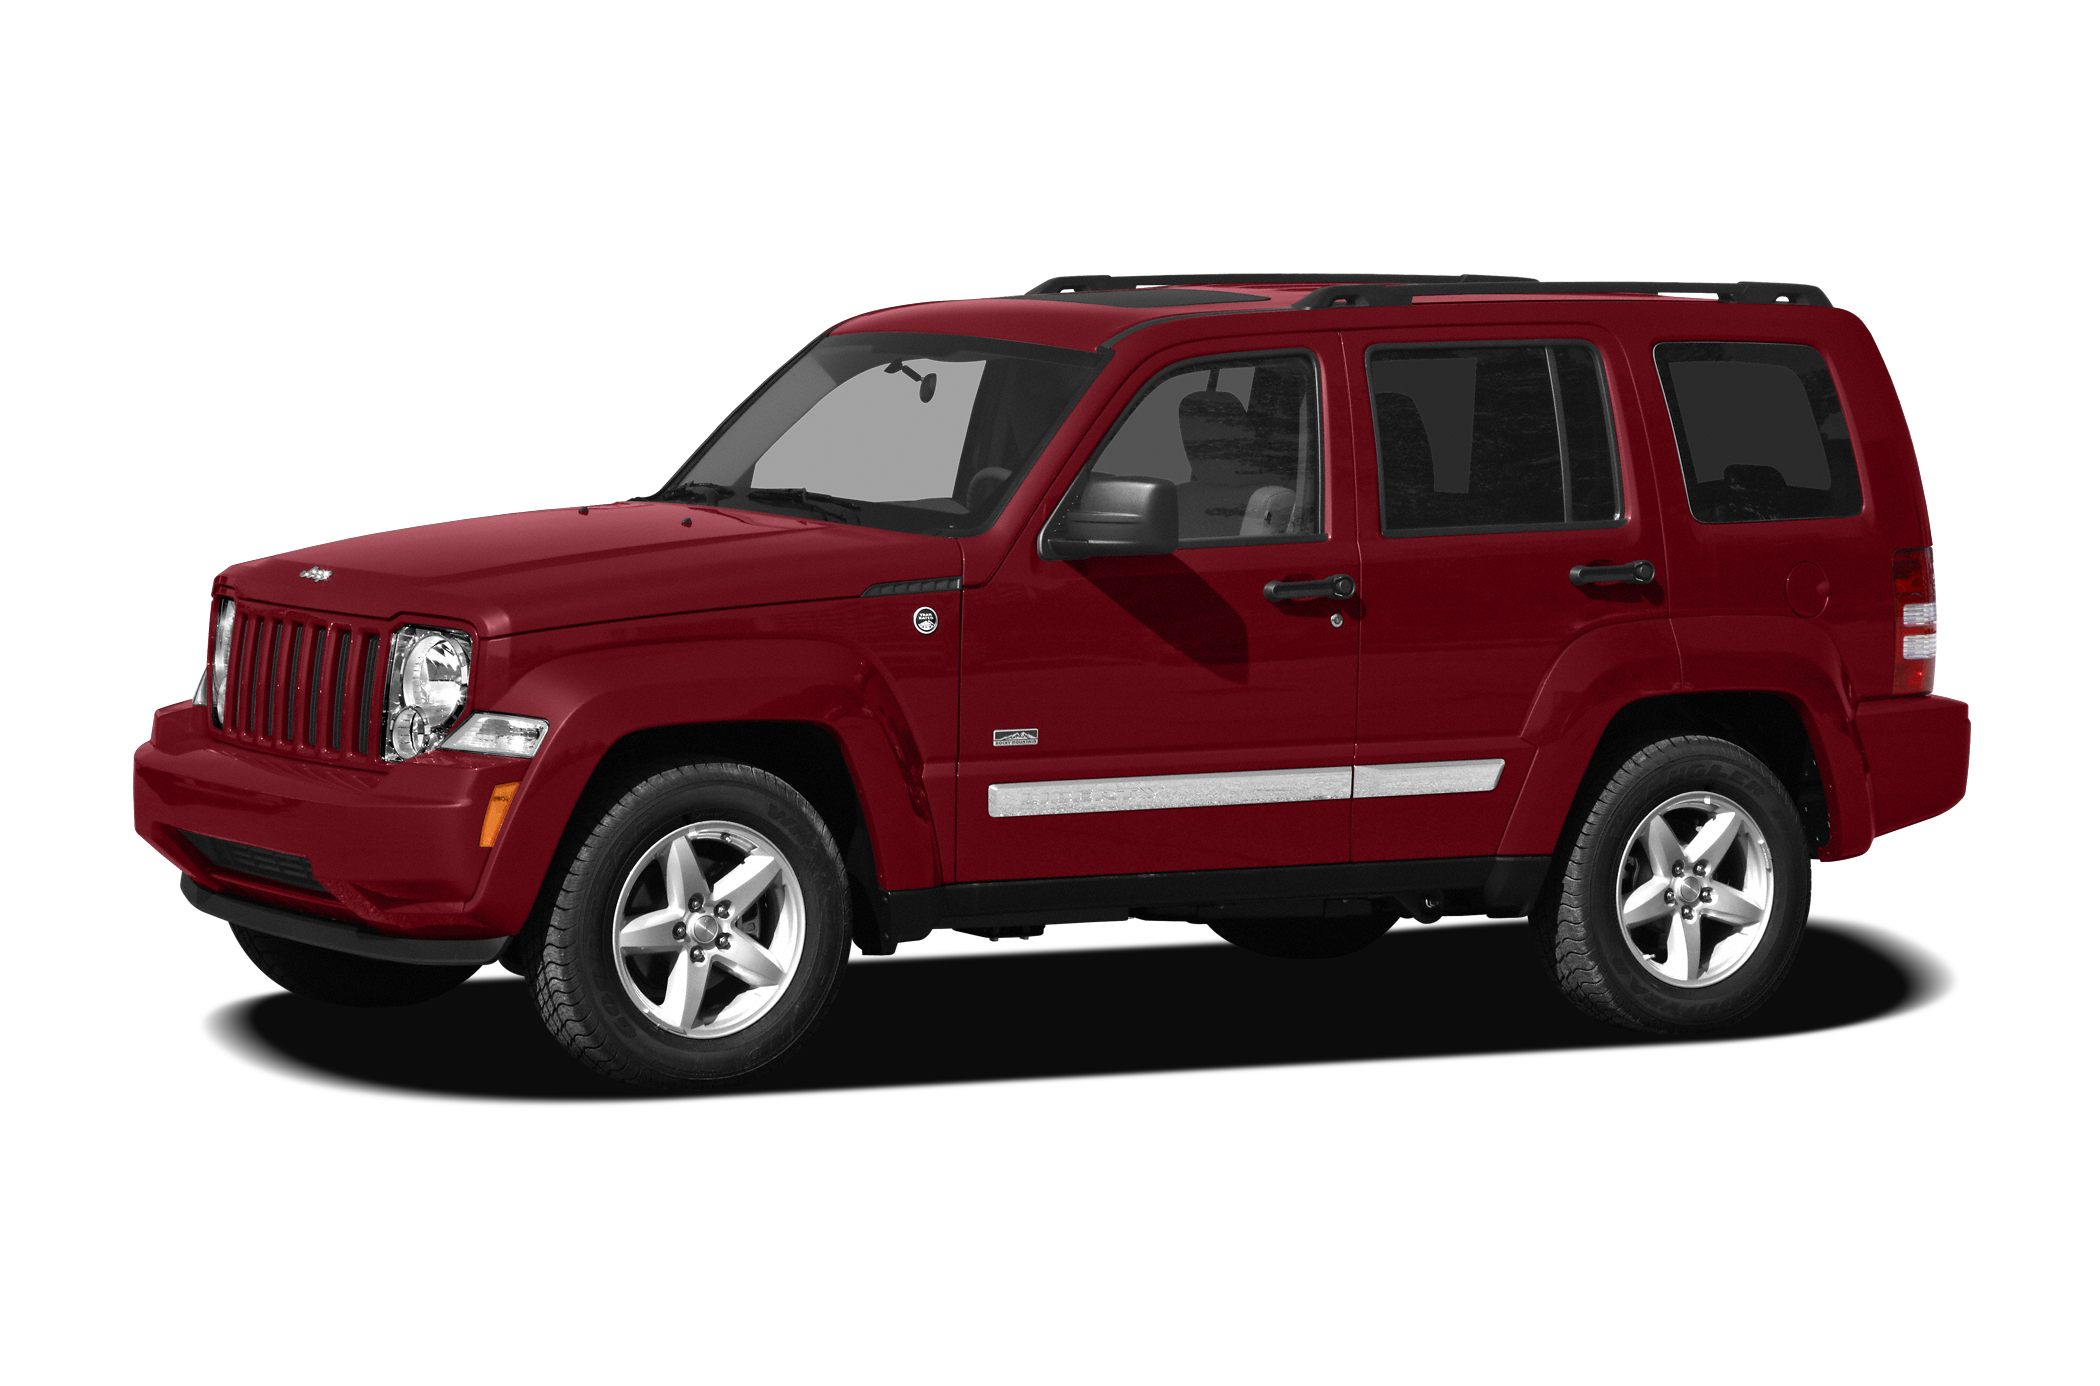 2008 Jeep Liberty Sport SUV for sale in Columbus for $10,894 with 78,222 miles